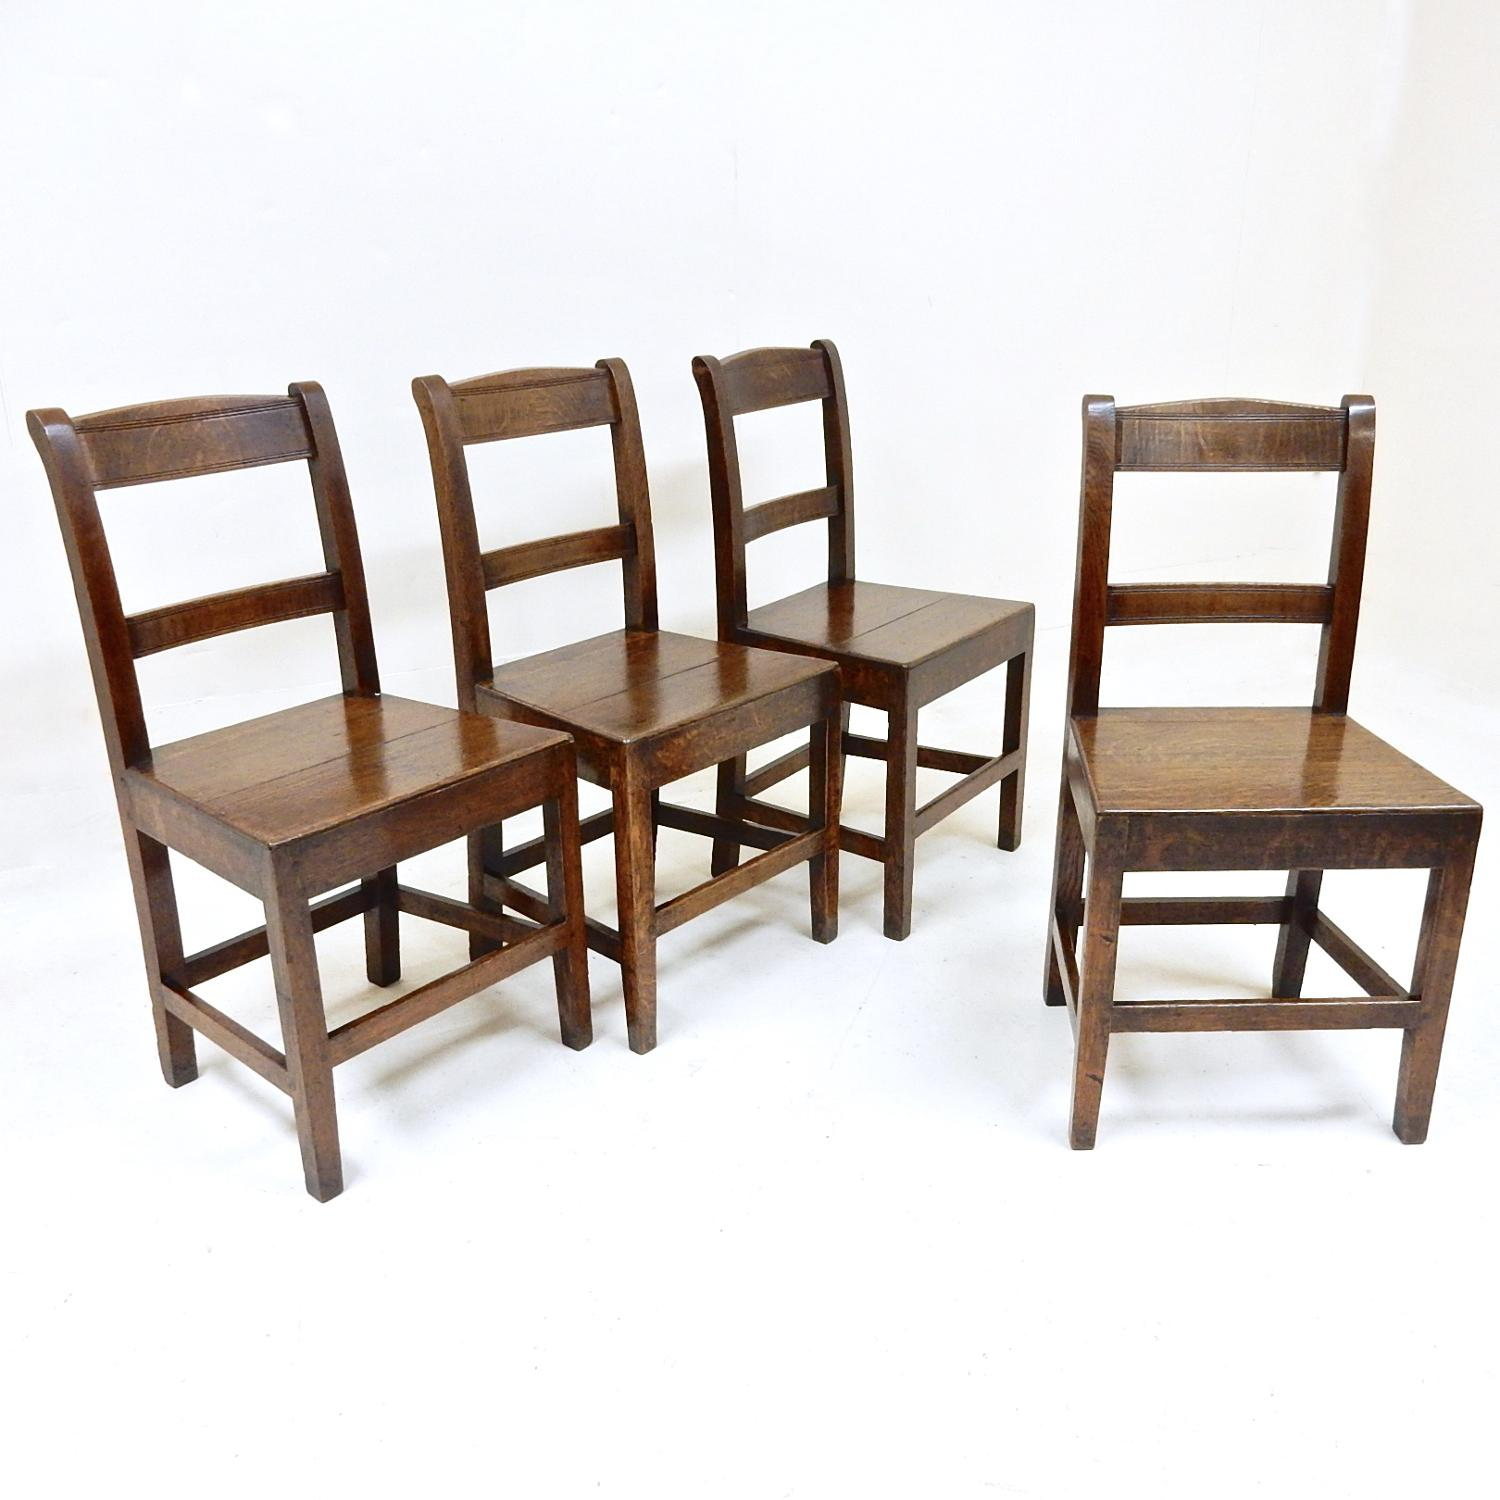 Antique Welsh Chairs